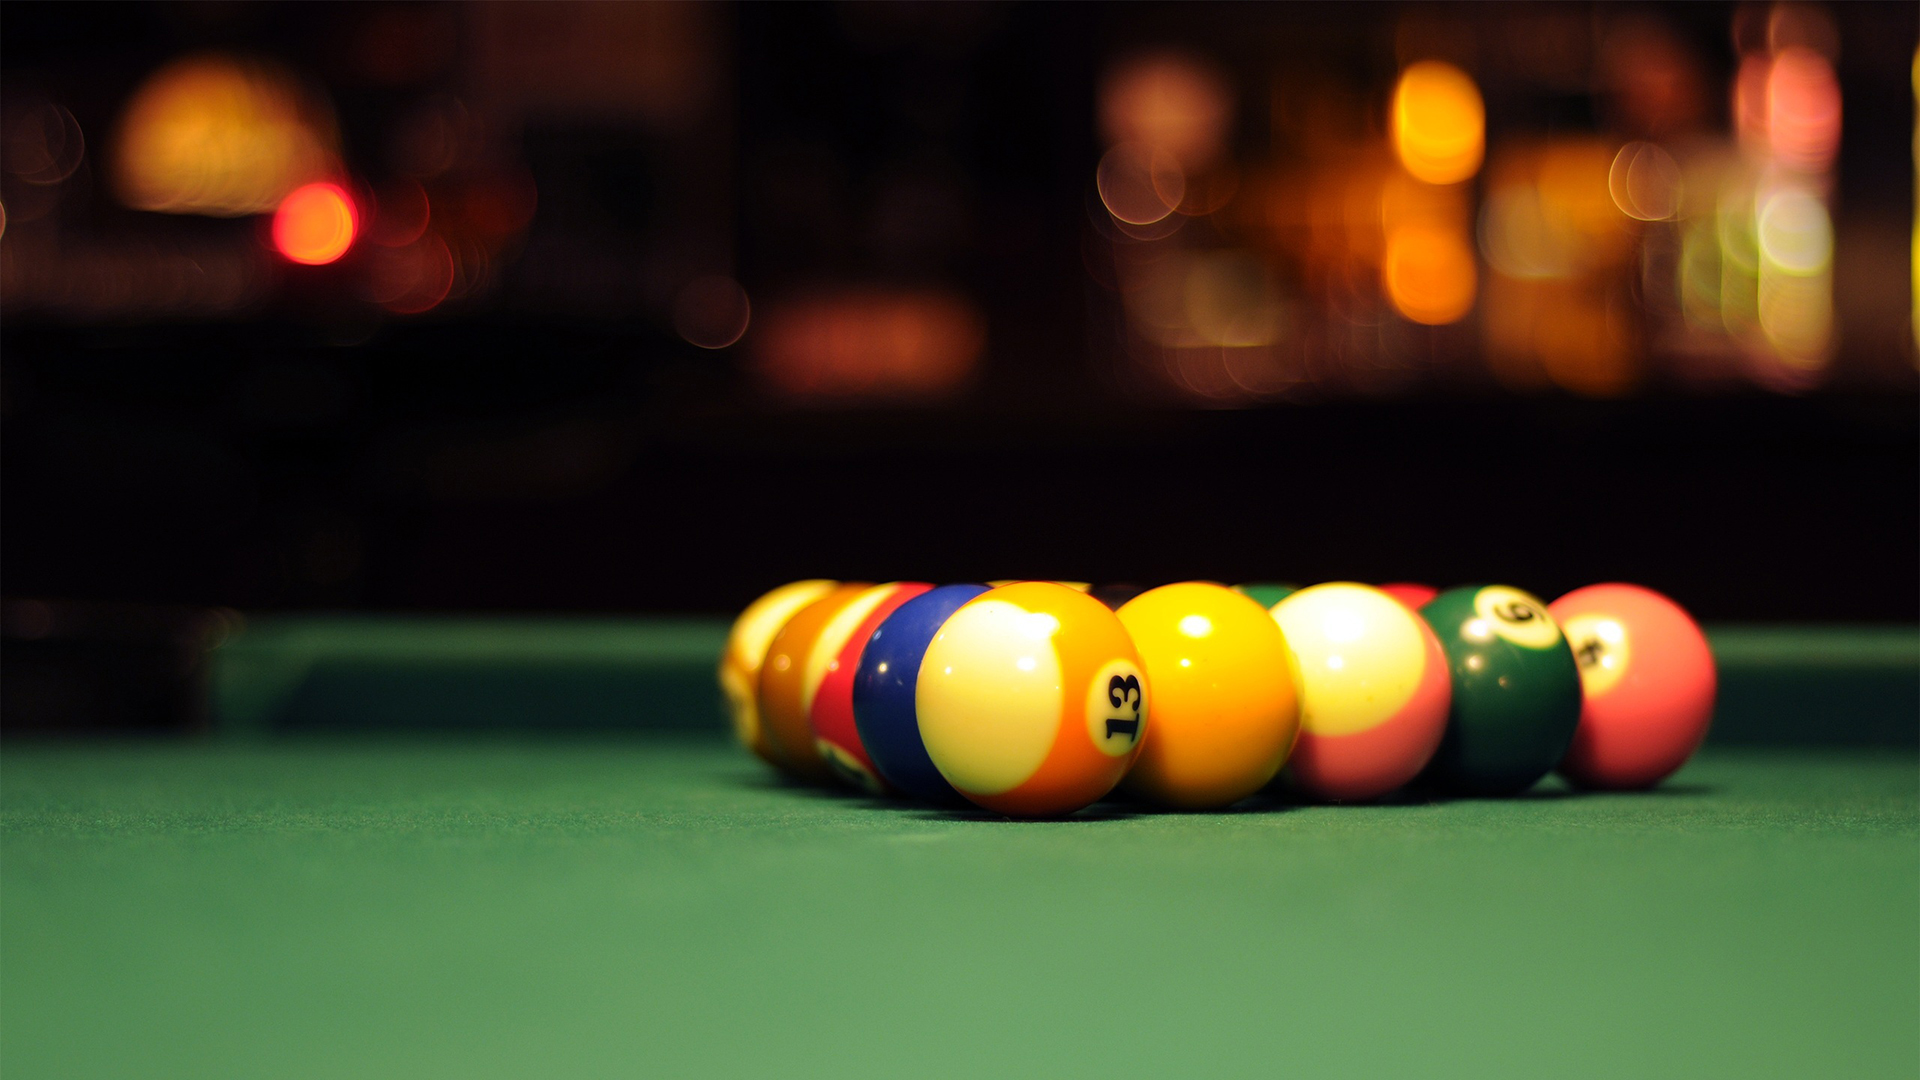 4426-billiards-table